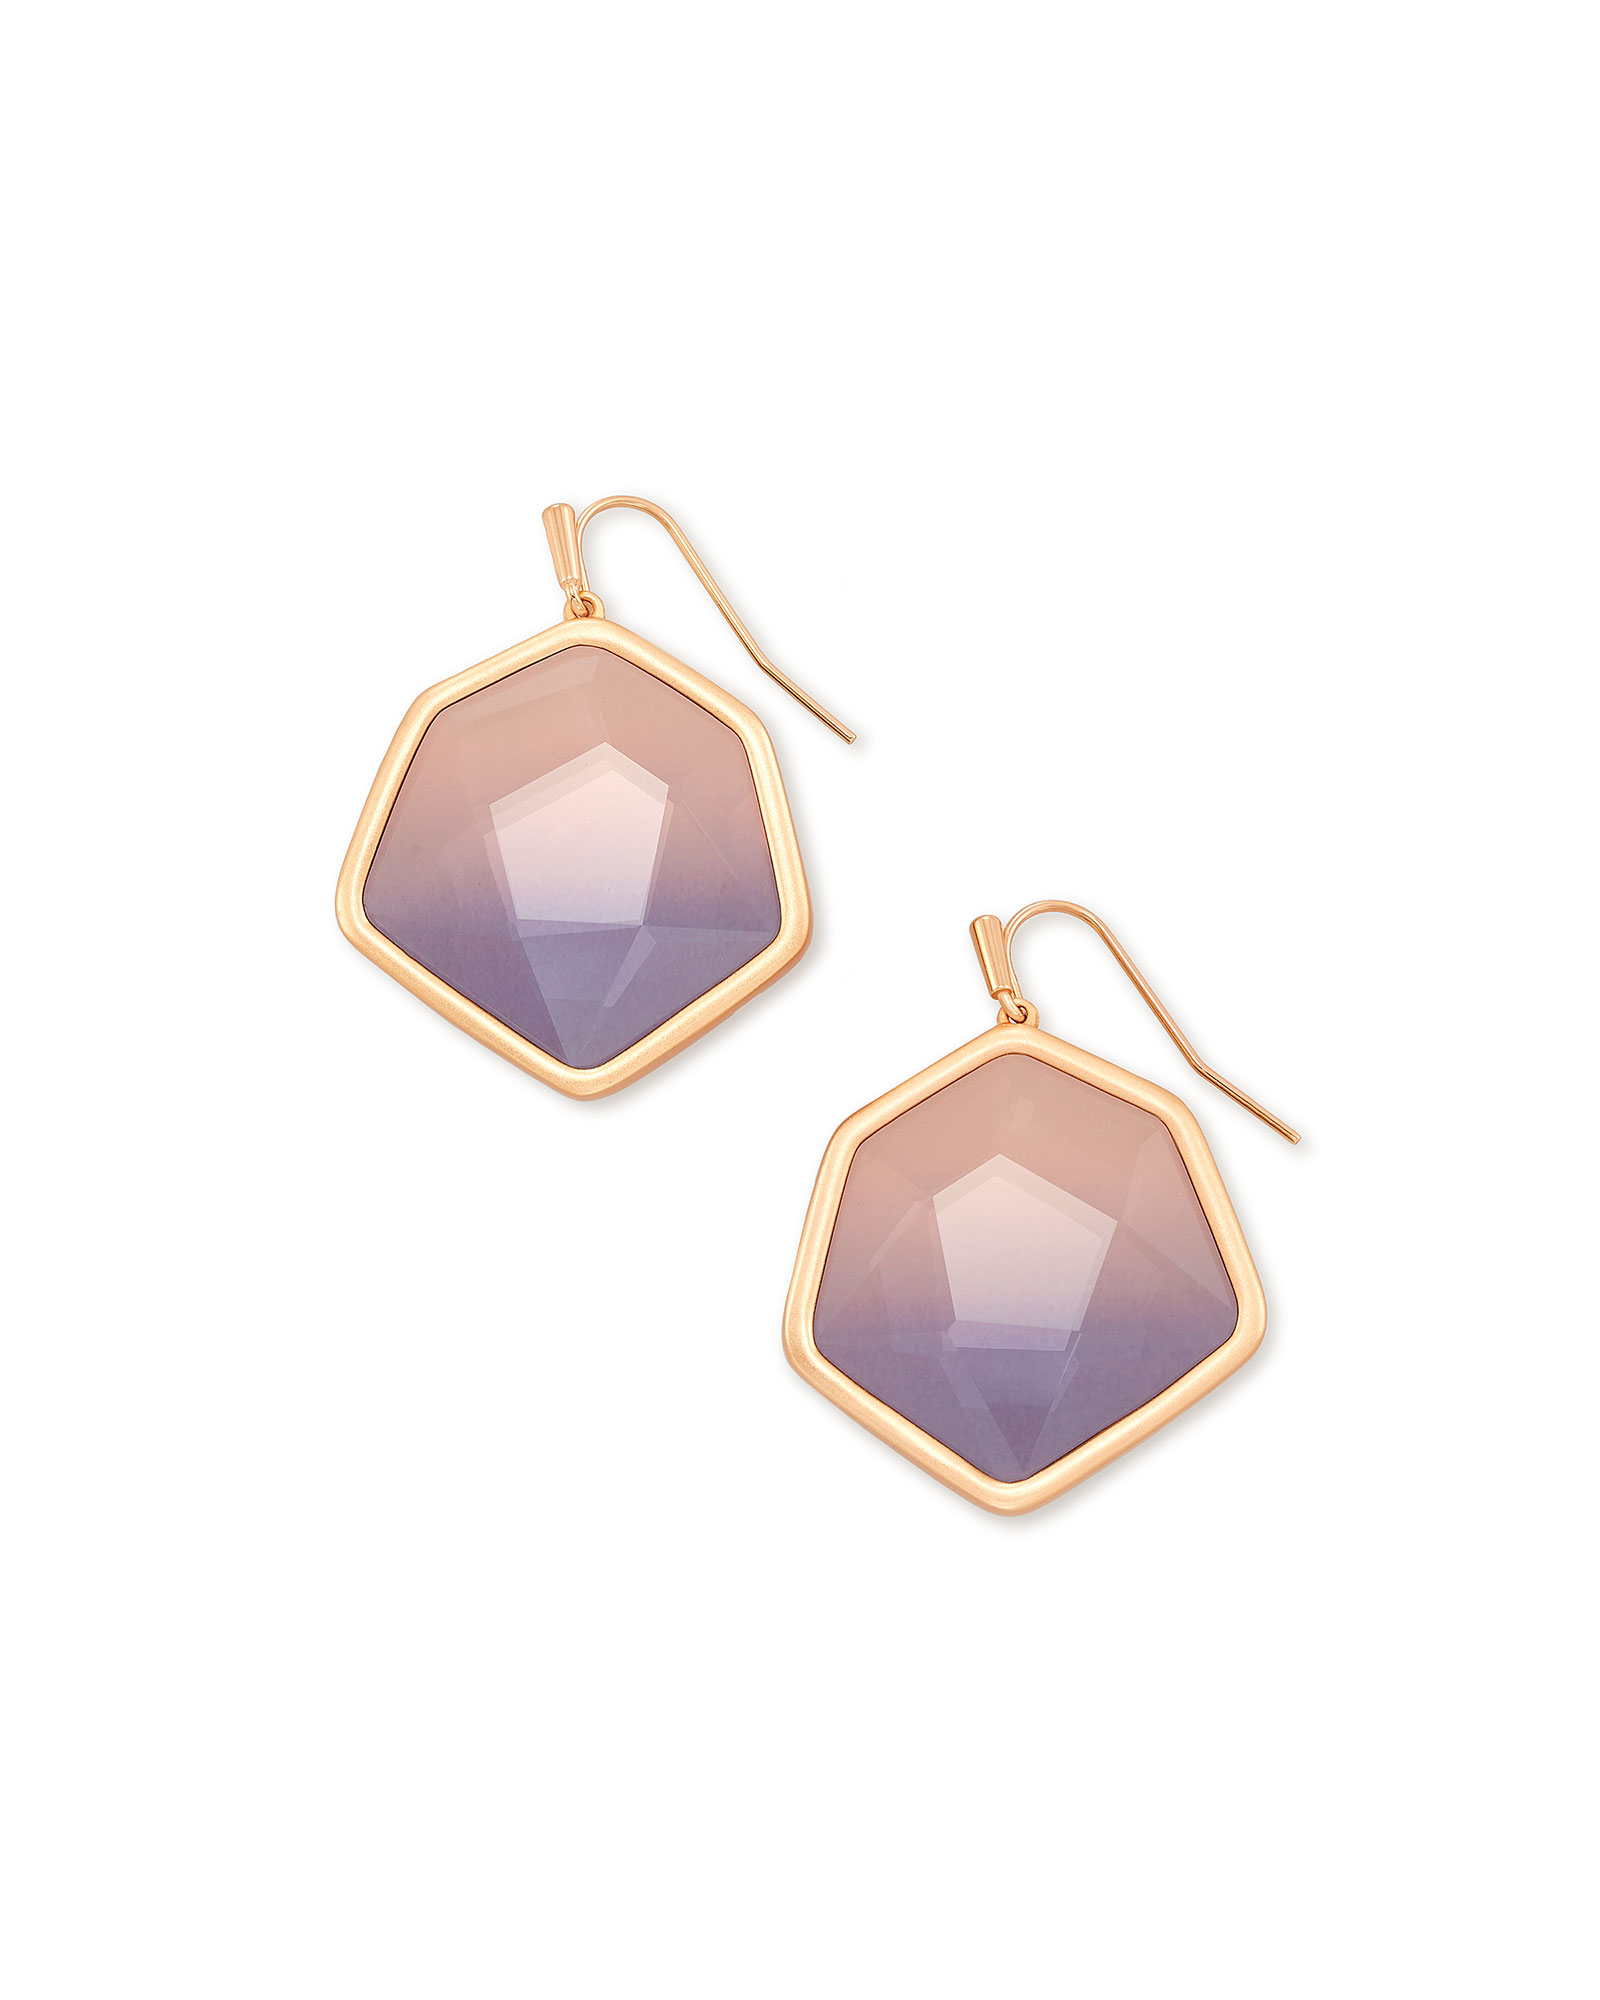 Vanessa Rose Gold Drop Earrings in Peach Ombre